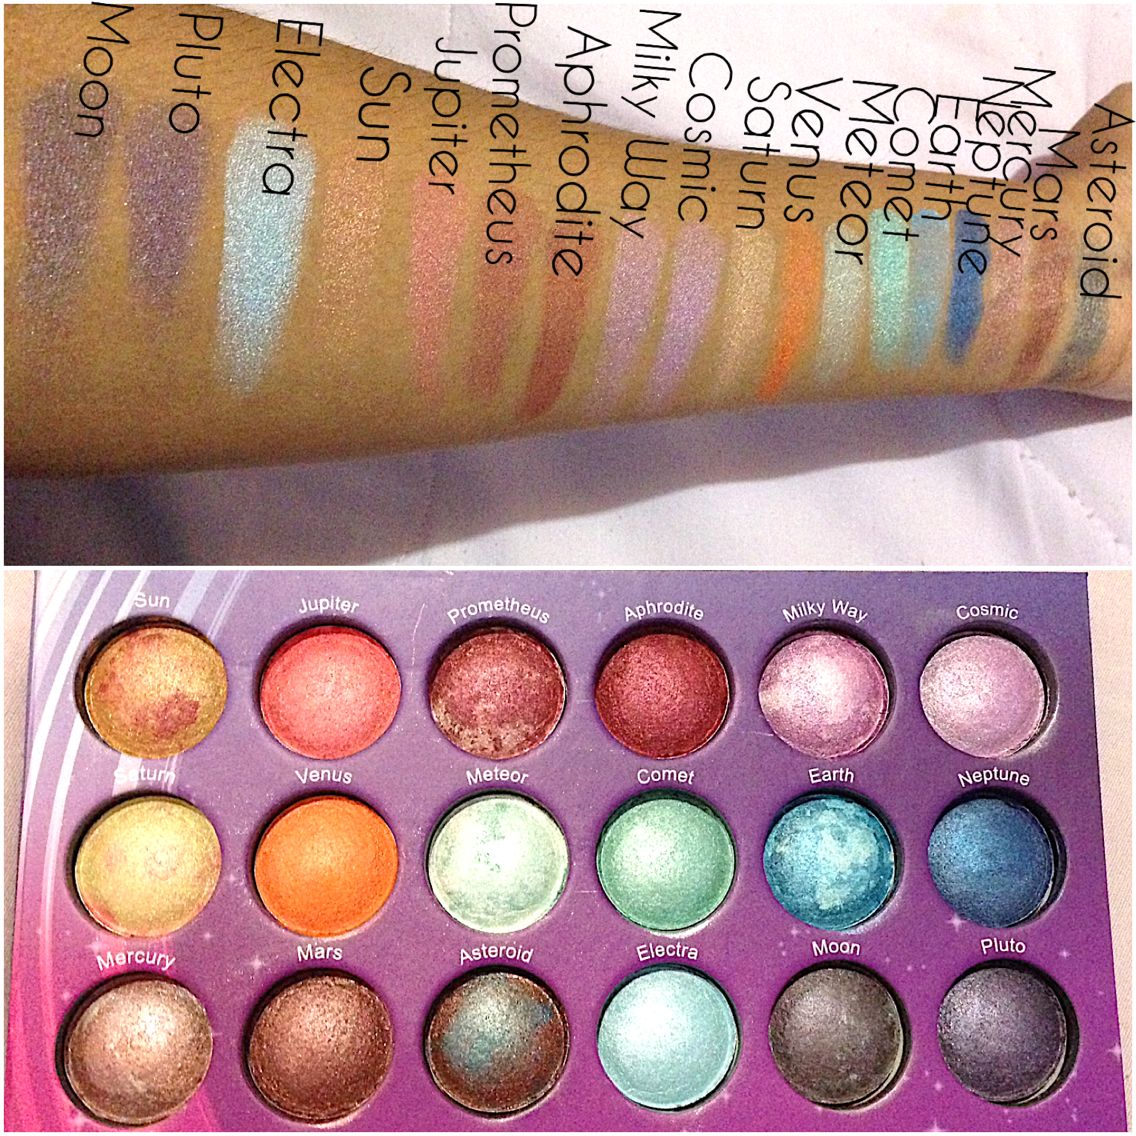 Galaxy Chic Baked Eyeshadow Palette by BH Cosmetics #17